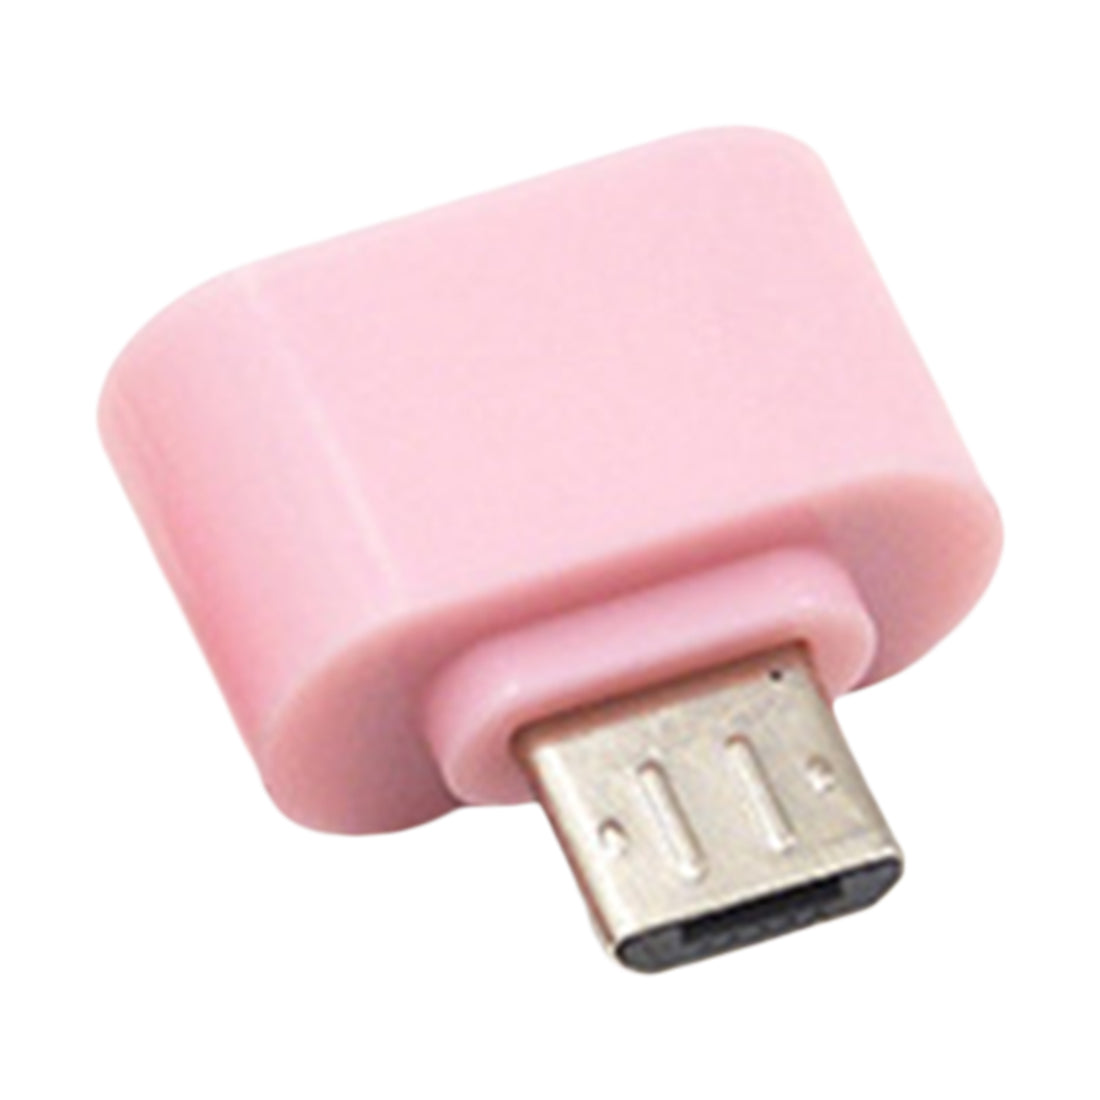 Costbuys  Digital Data New Standard Micro USB To USB OTG Mini Adapter Converter for Android Cell phones Accessories - Pink